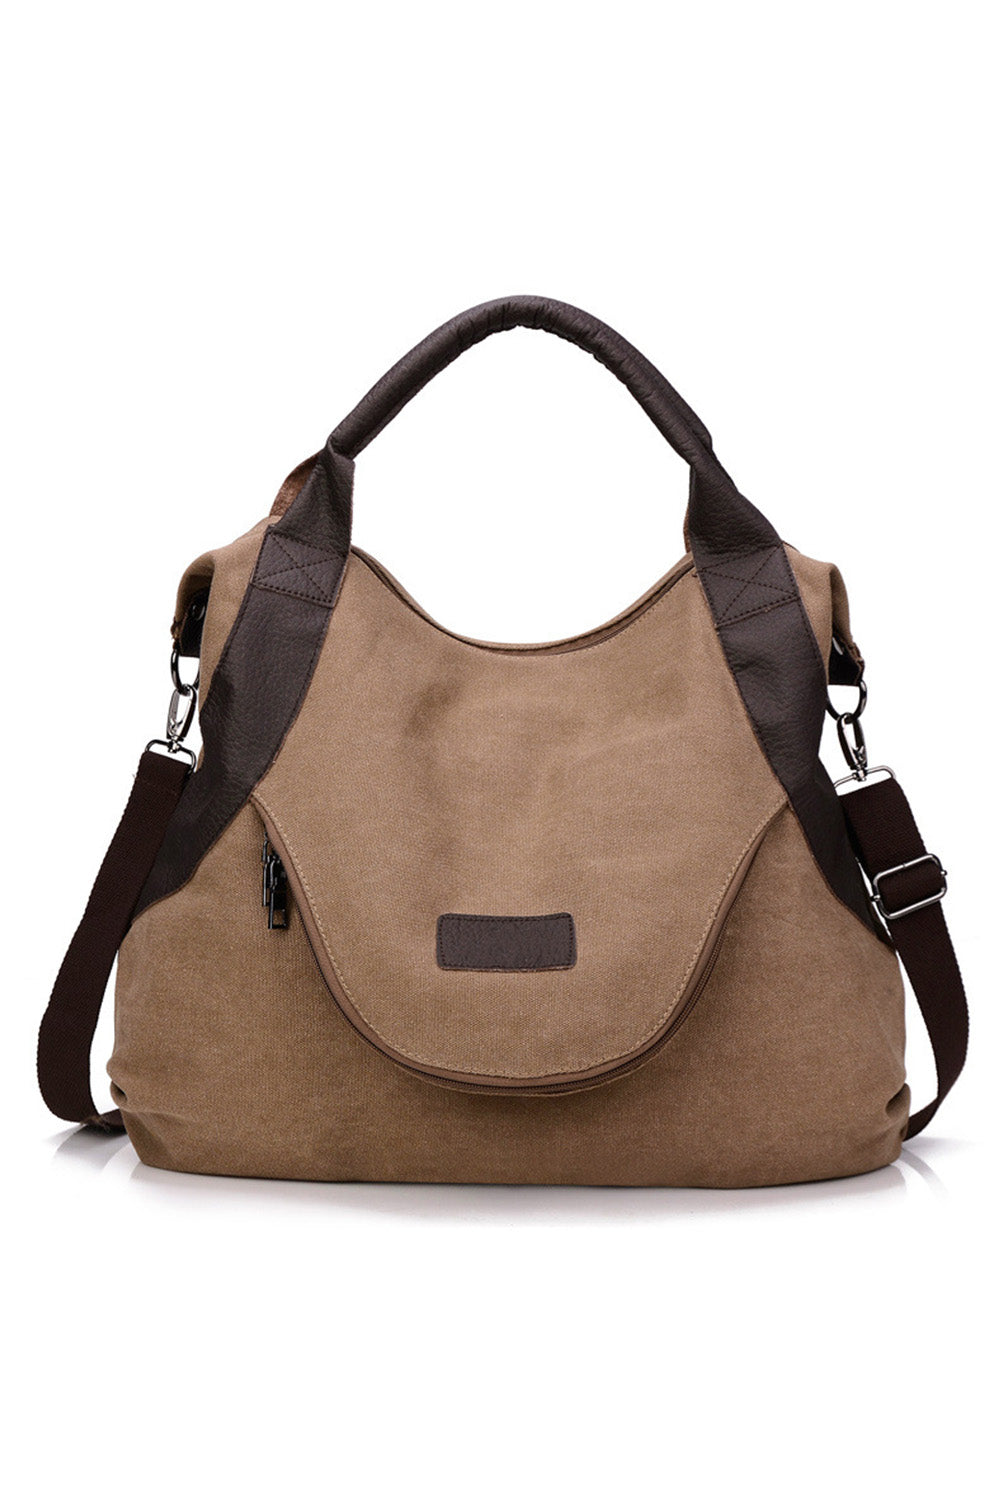 Brown Casual Canvas Handbag Shoulder Bag Bags Discount Designer Fashion Clothes Shoes Bags Women Men Kids Children Black Owned Business